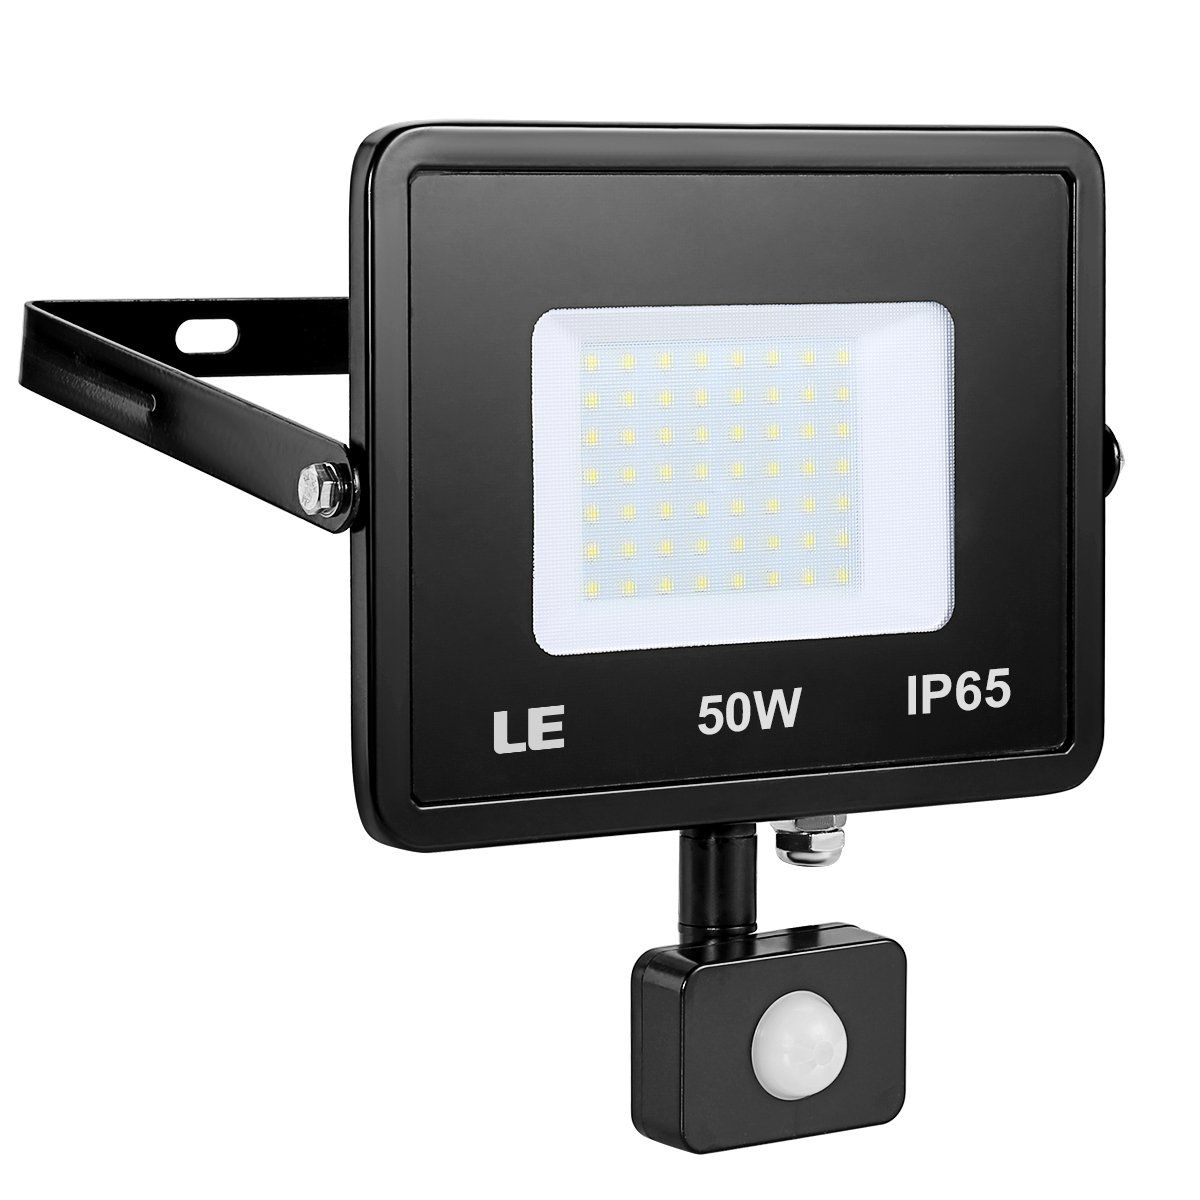 Outdoor Led Motion Lights Prepossessing Le 50W Motion Sensor Flood Light 4000Lm Outdoor Led Flood Lights Design Ideas